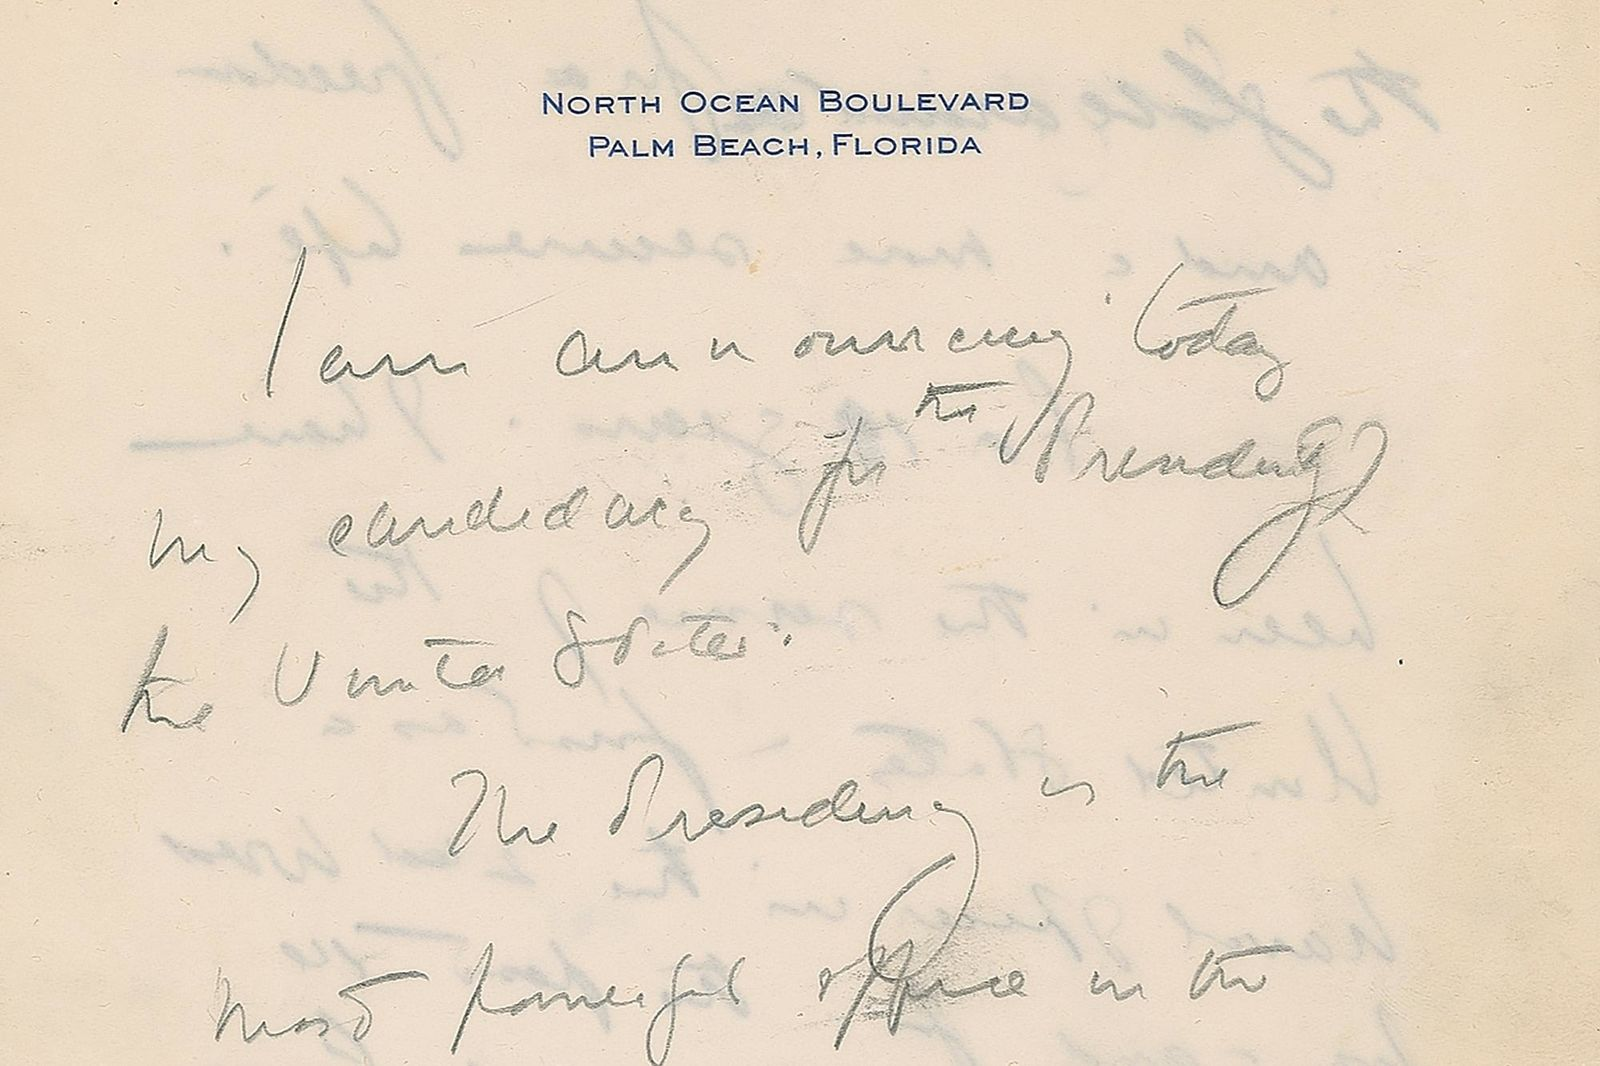 This December 2019, image released by RR Auction shows the top of the first page of a handwritten draft of the 1960 speech by John F. Kennedy announcing his intention to run for president.(Nikki Brickett/RR Auction via AP)